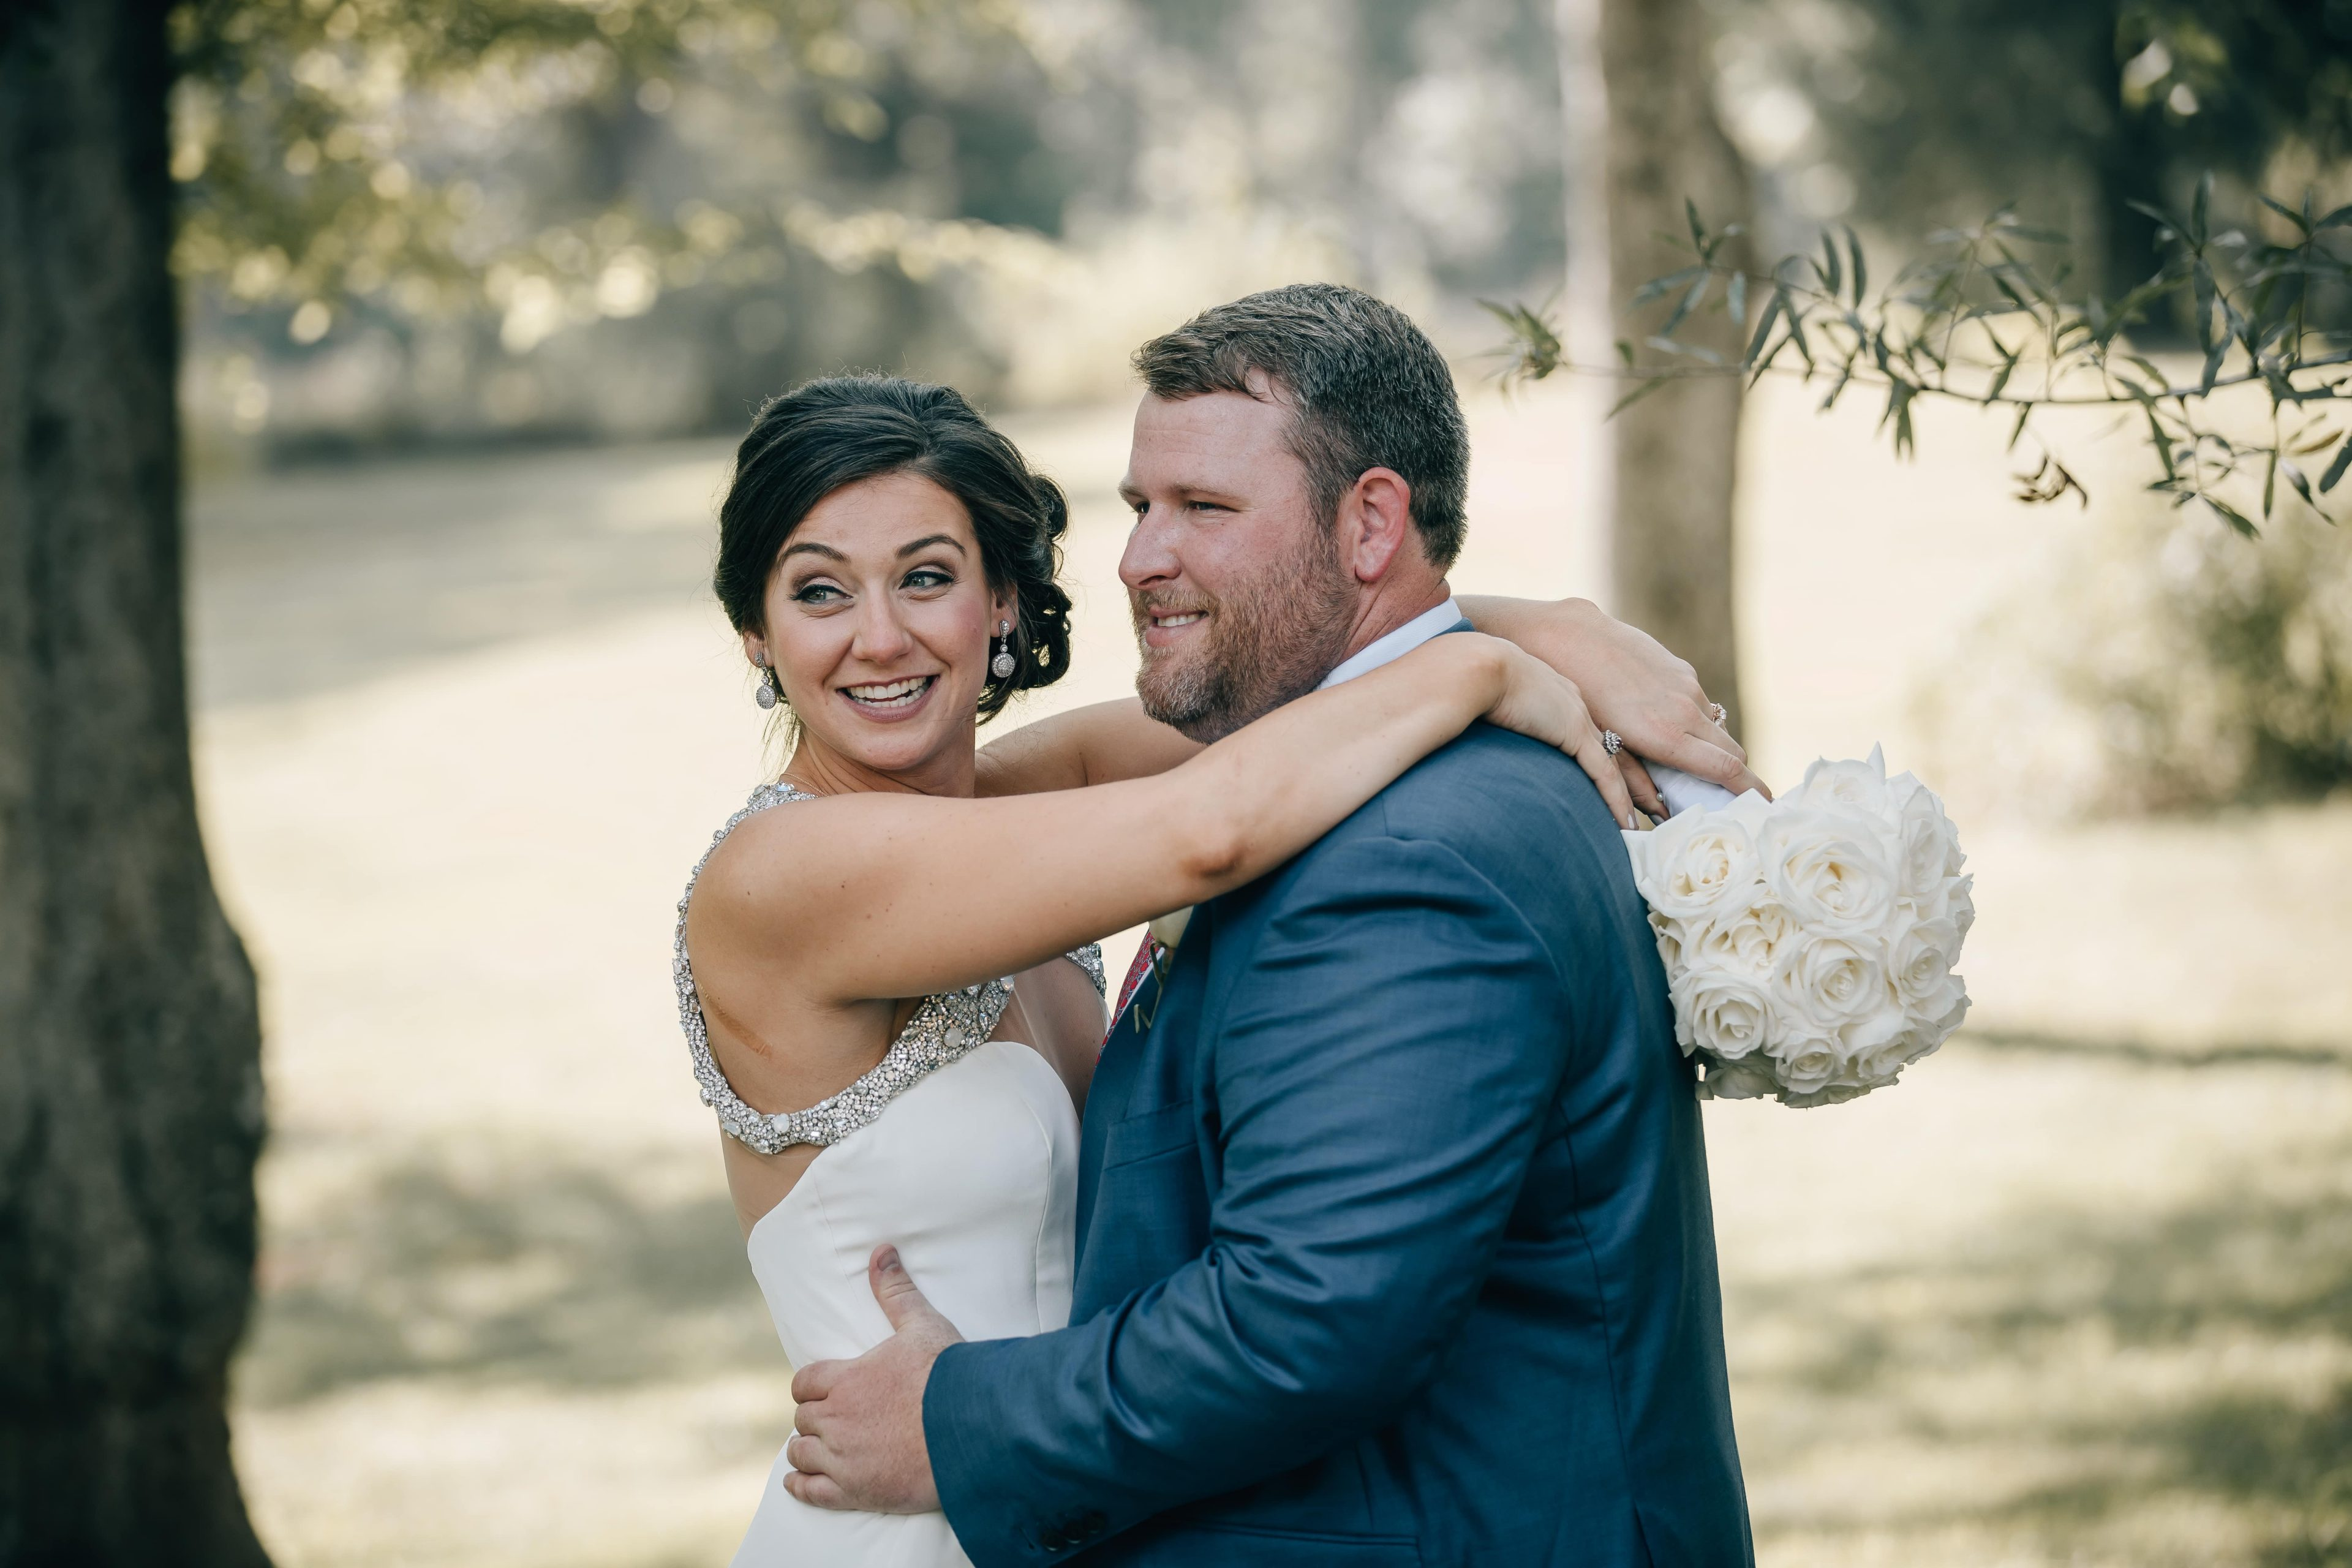 Bride and groom share a sweet moment captured by Shutter Owl Photography during their summer wedding at The Ivy Place